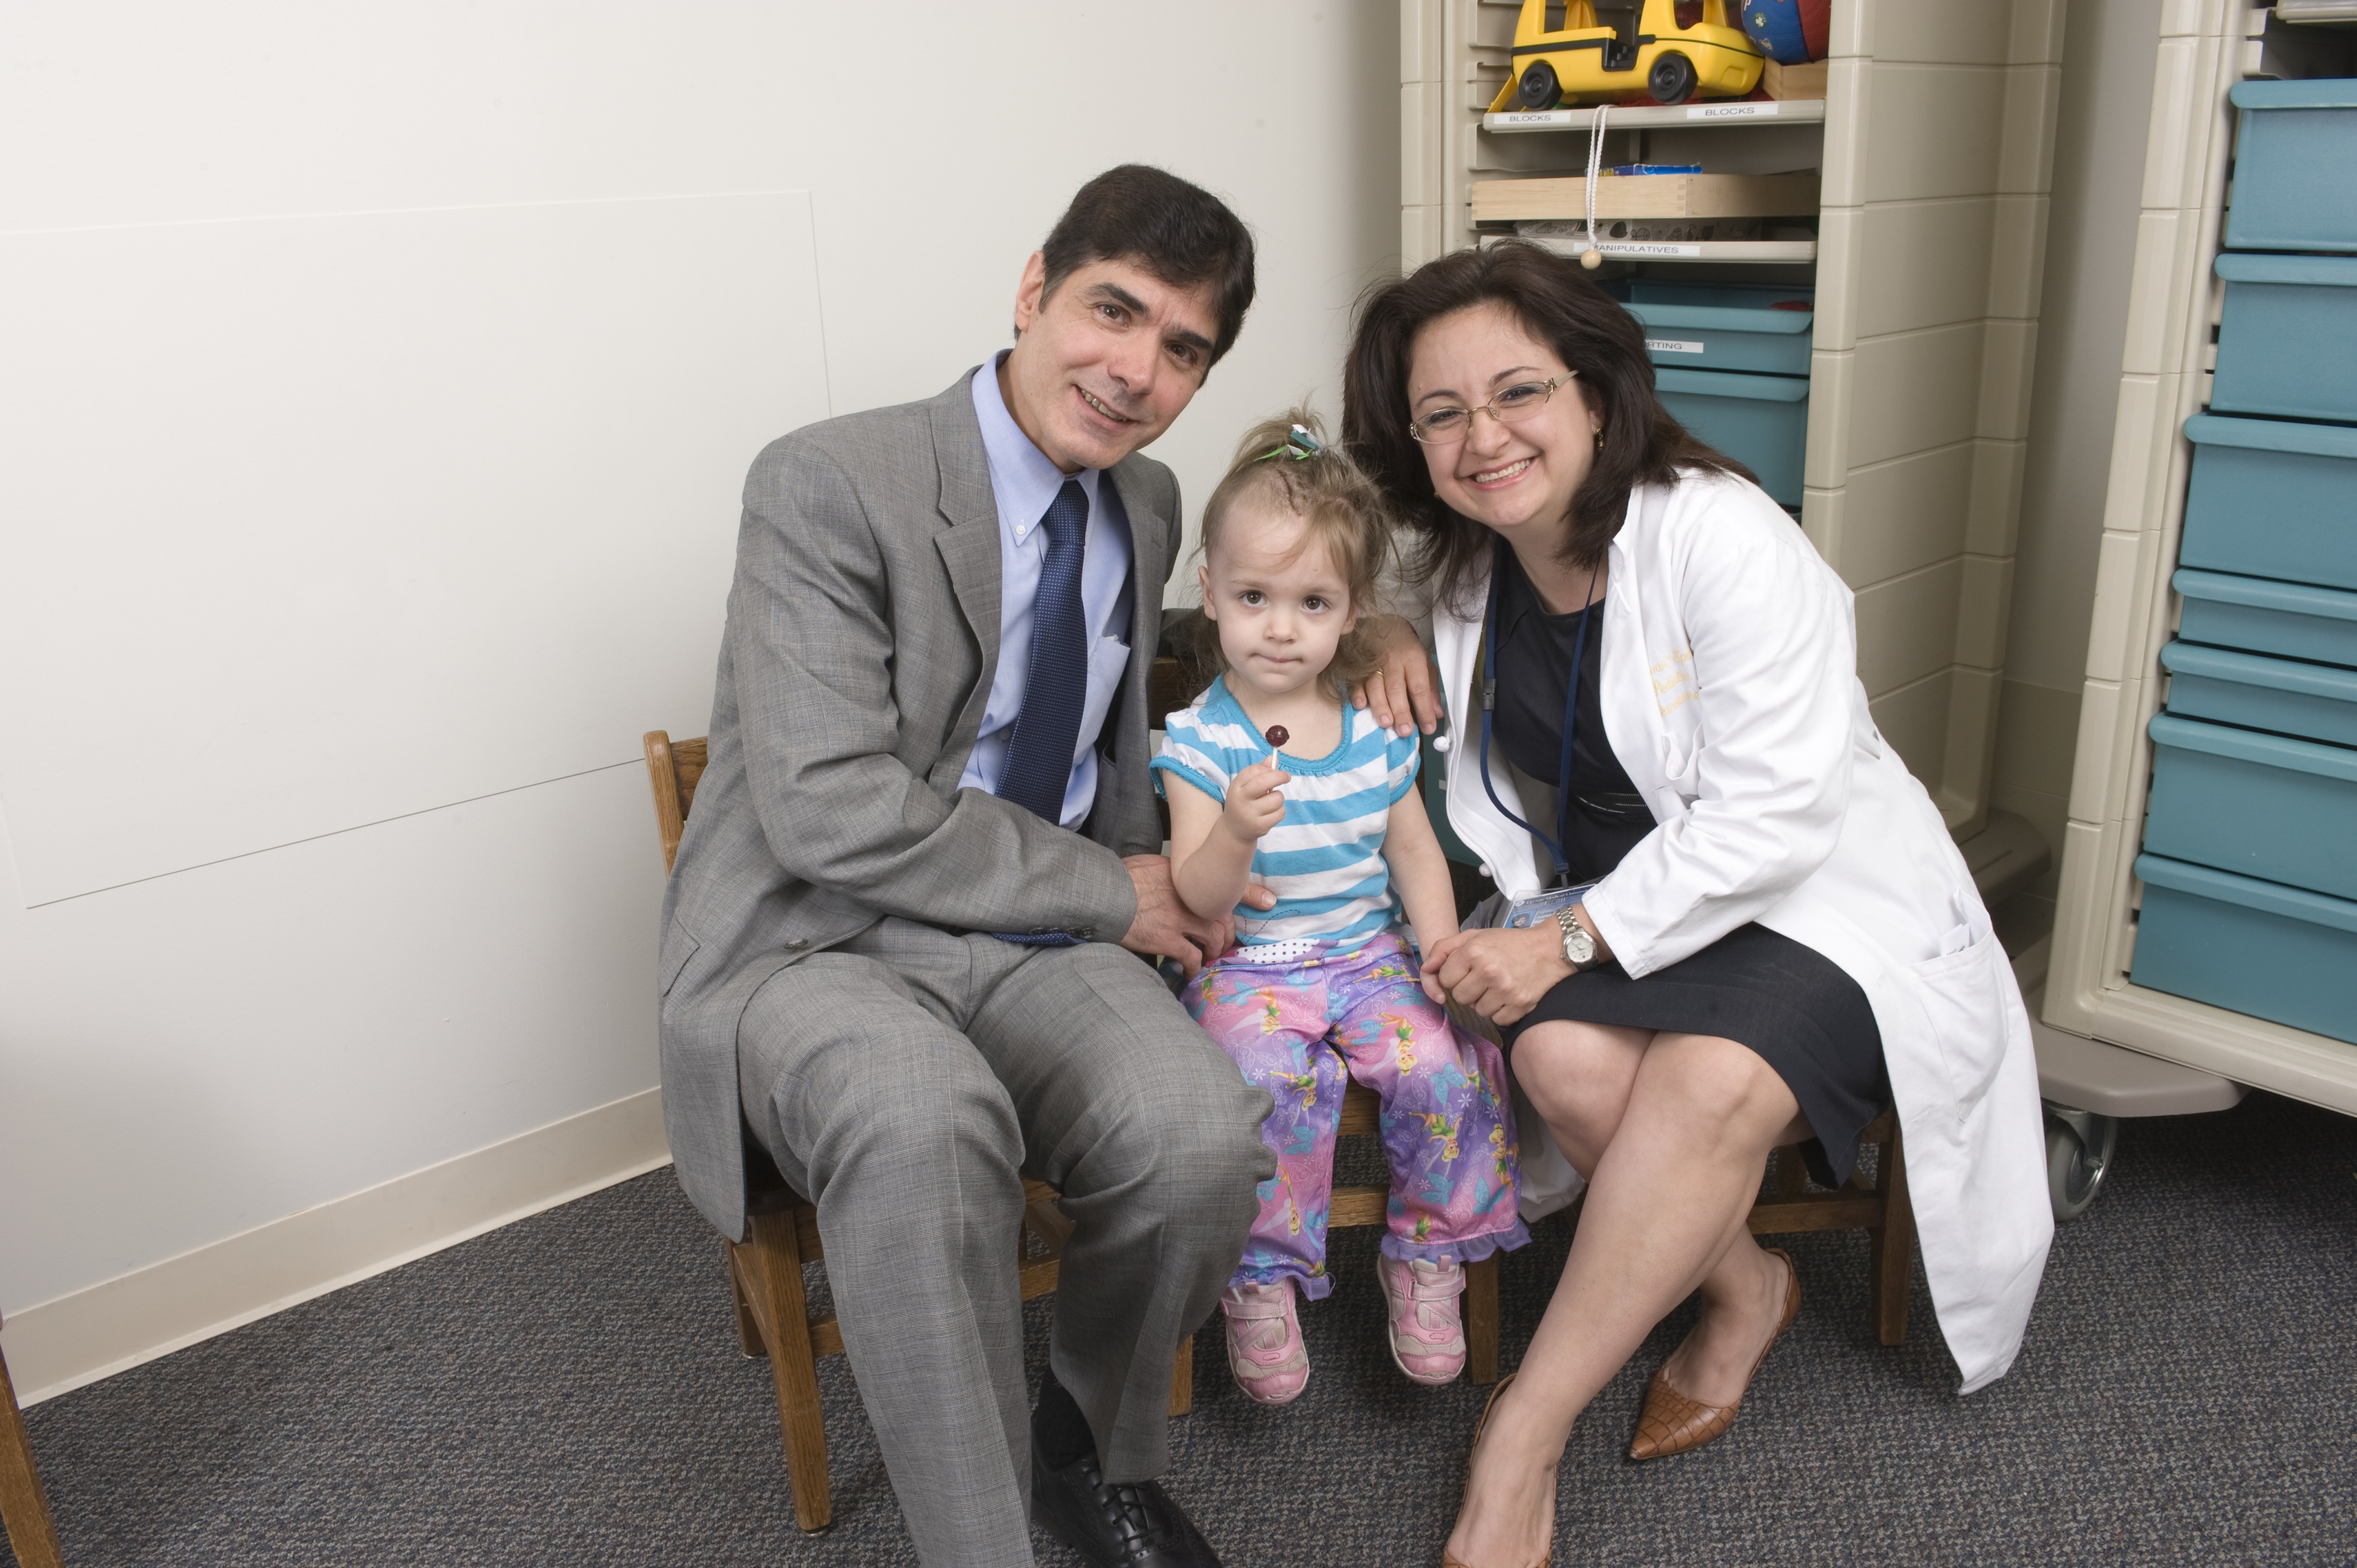 one family s ordeal seizure surgery treats epilepsy what s up drs yaman eksioglu and zulma tovar spinoza lily craparo